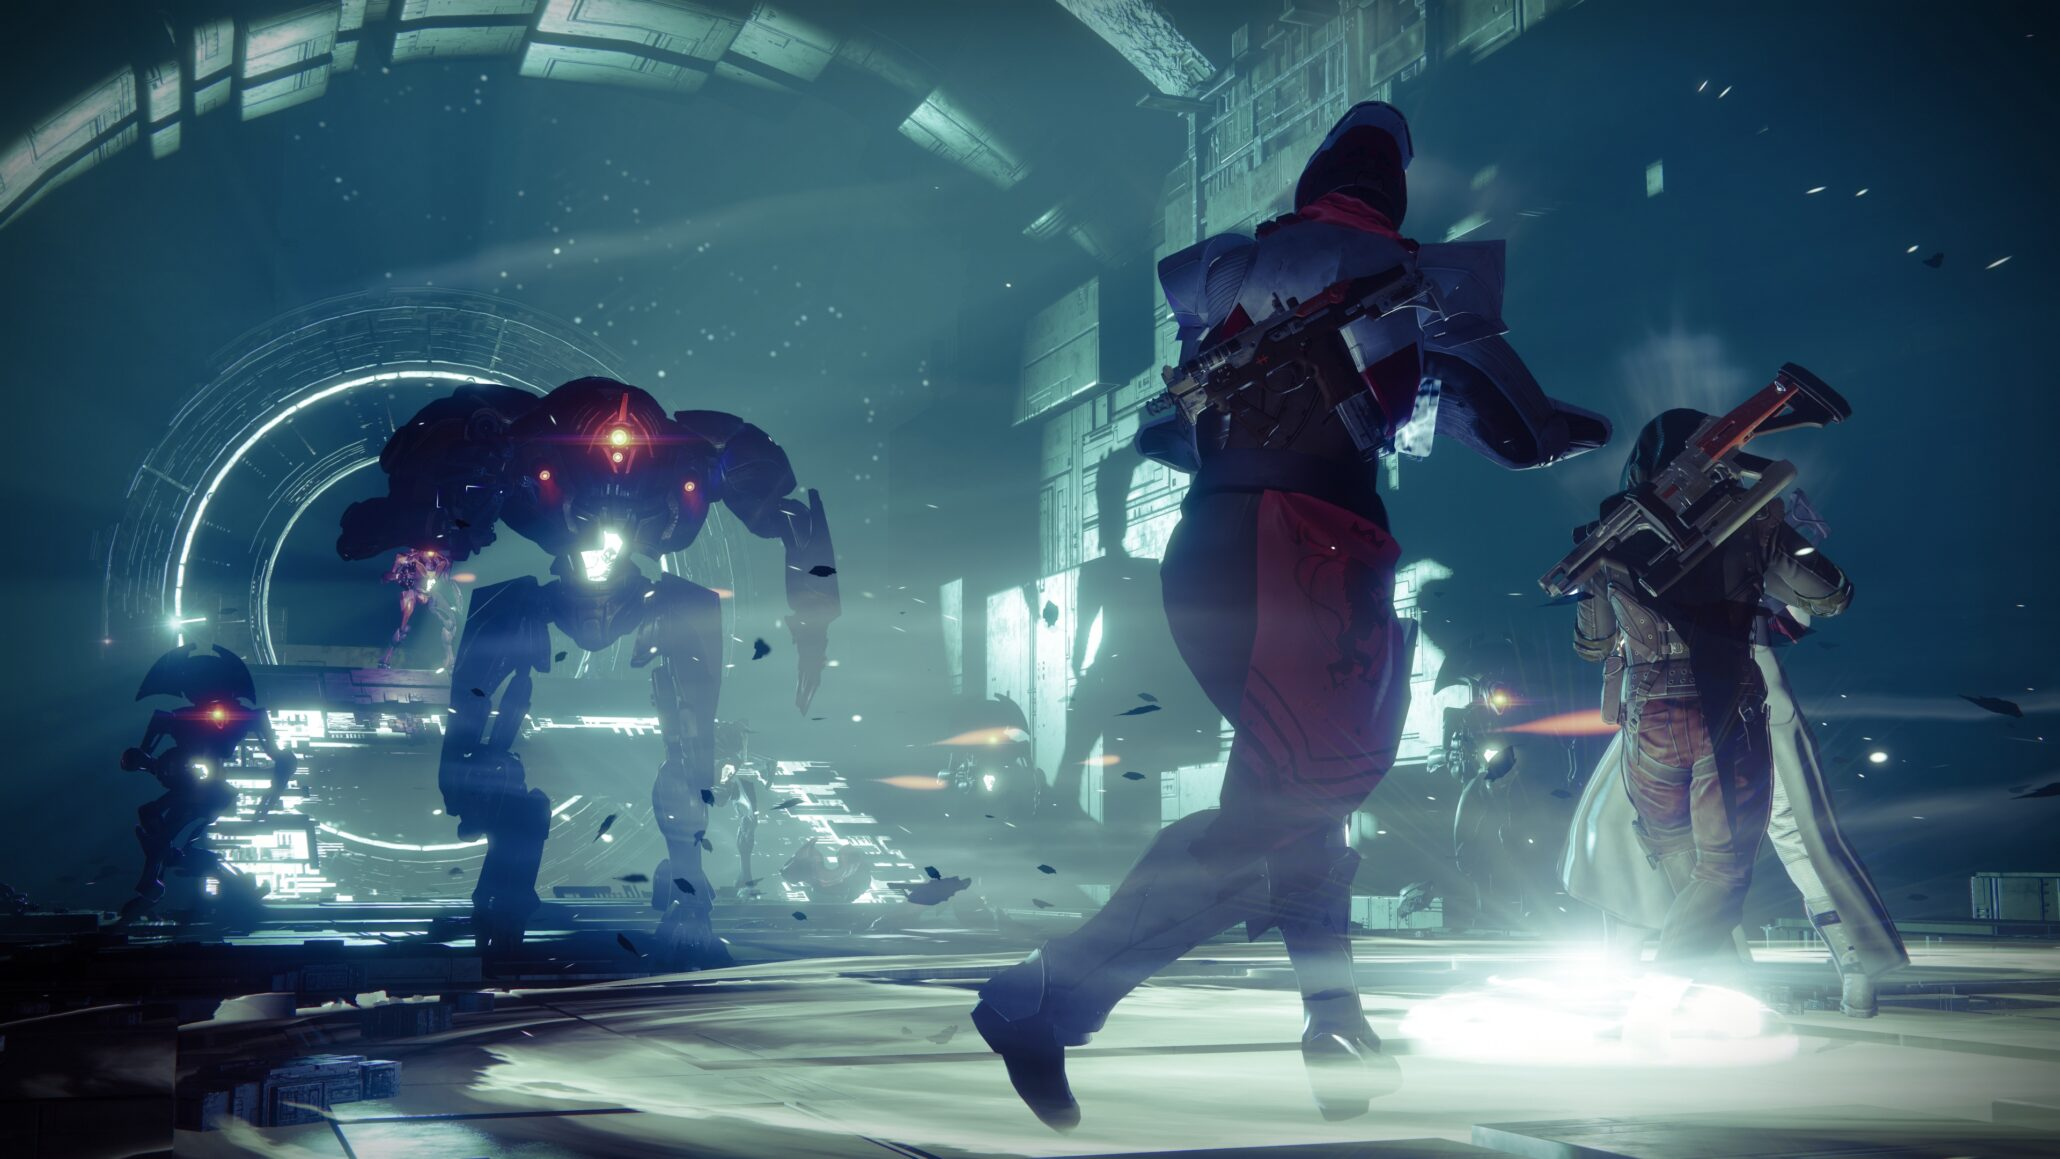 Destiny 2 on PC Is So Optimized That A GTX 970 Can Run It